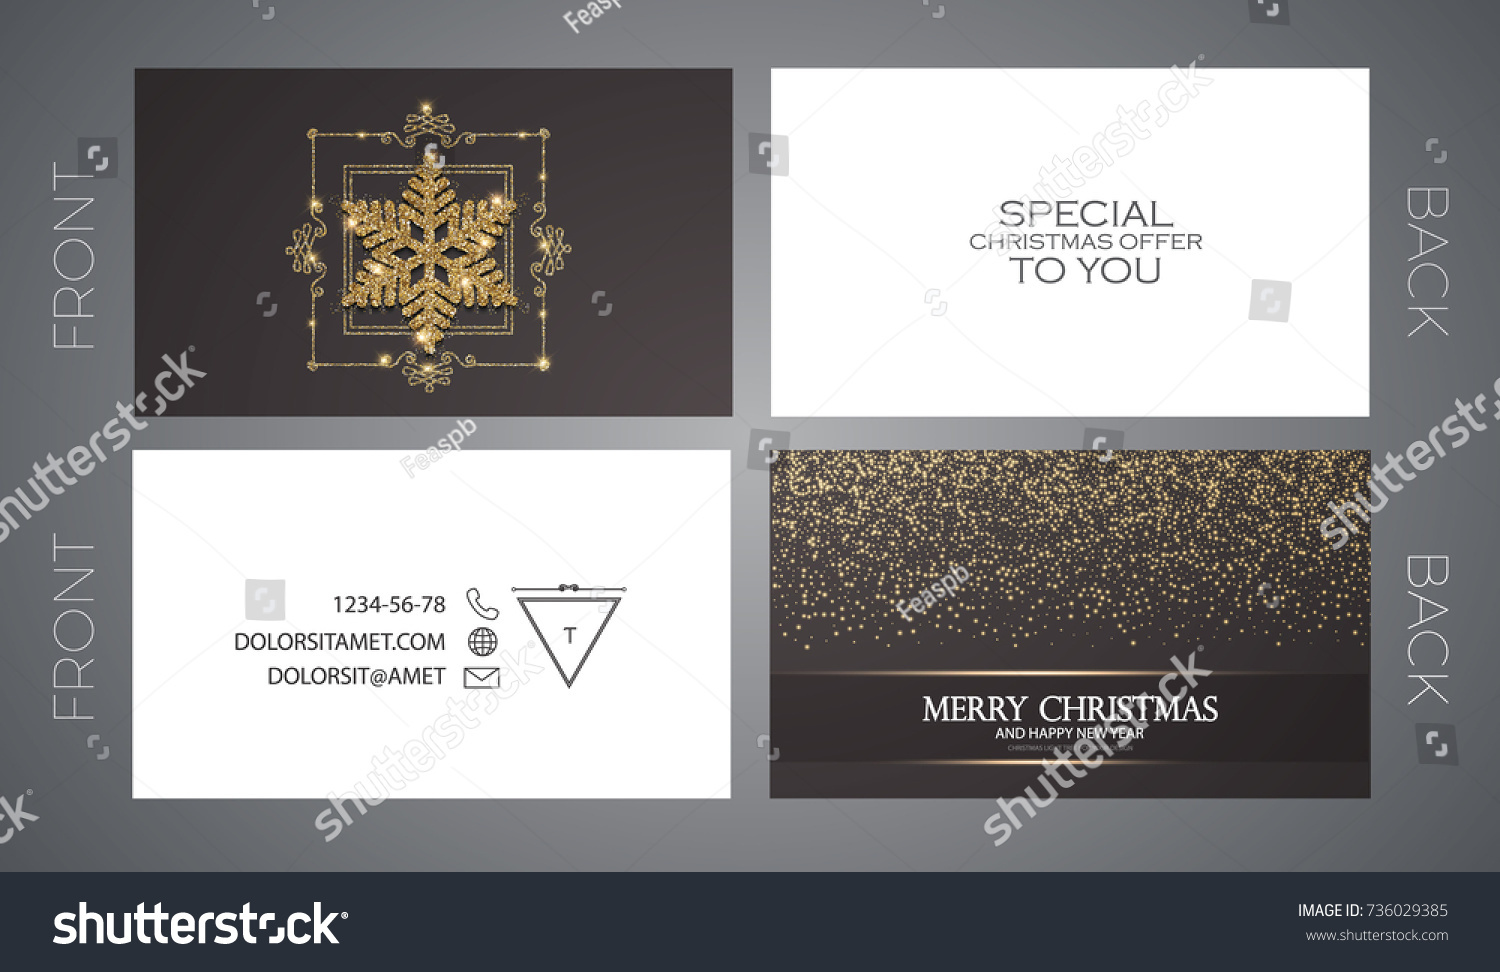 Merry Christmas New Year Offer Cards Stock Vector 736029385 ...